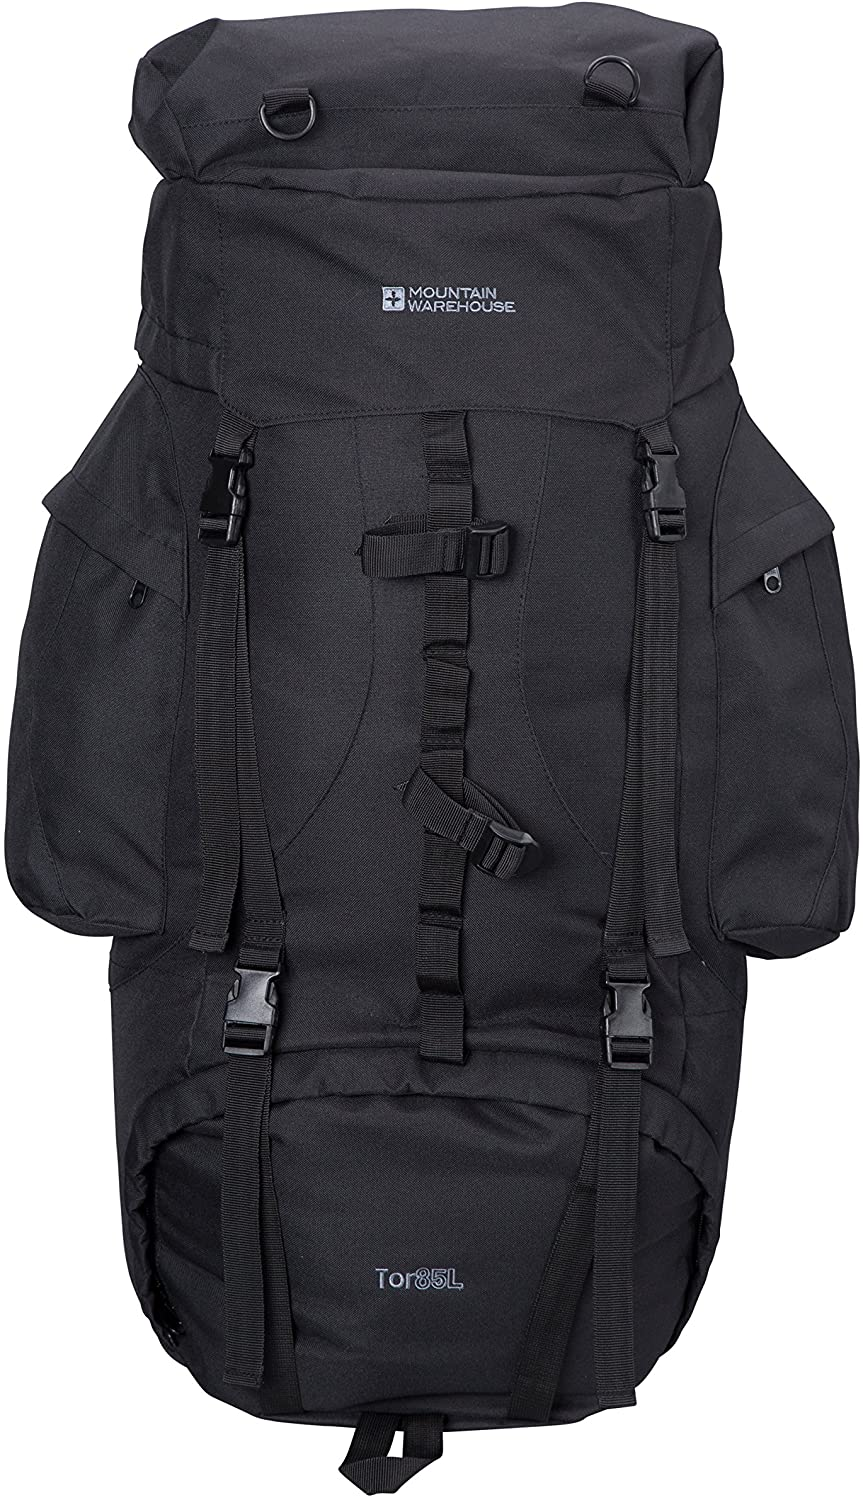 Mountain Warehouse Tor 85L Backpack -for Hiking, Backpacking, Camping